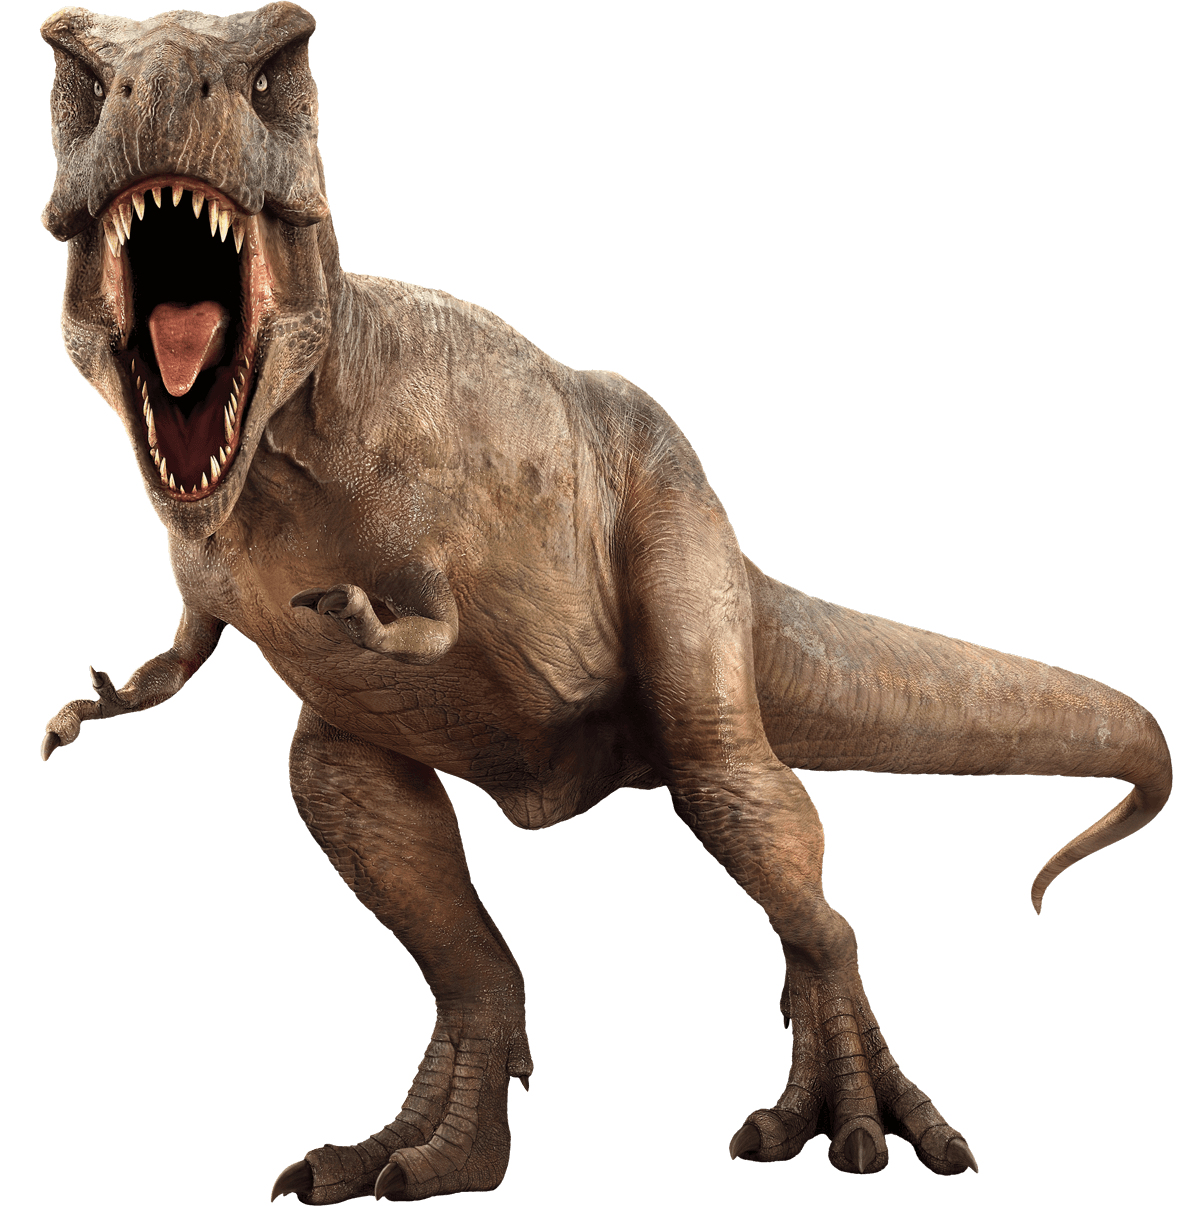 Download jurassic park picture hq png image freepngimg download png image jurassic park picture 427 gumiabroncs Images